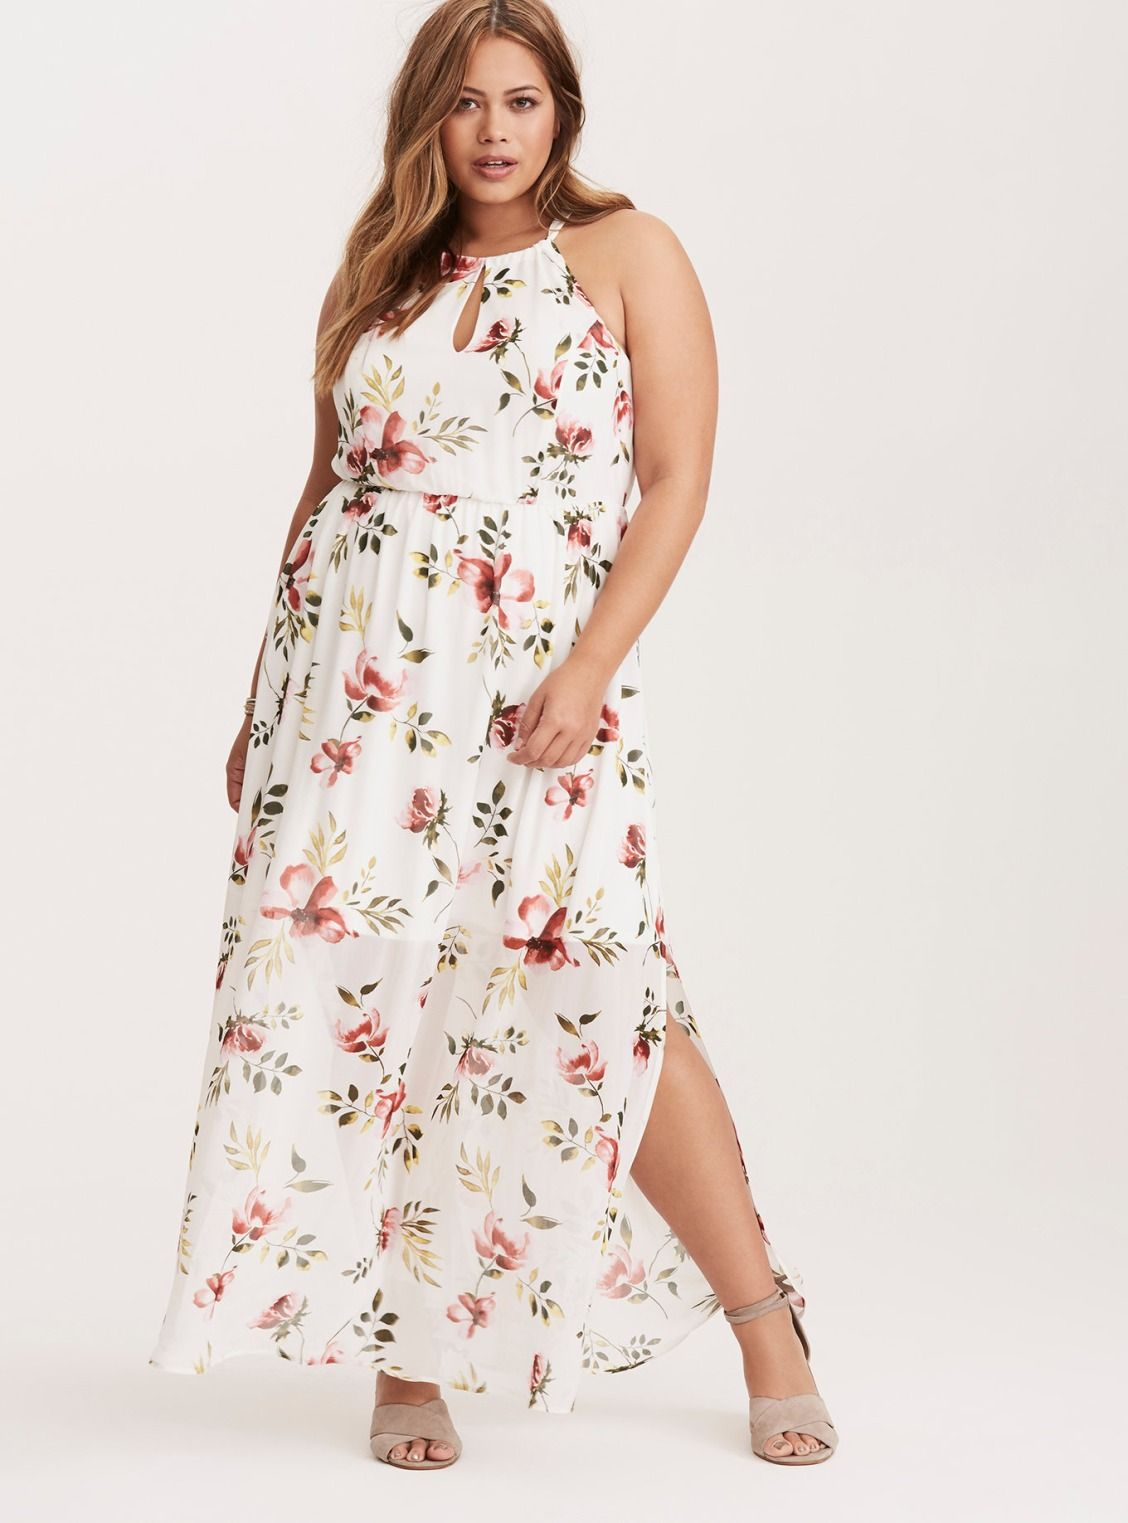 55676330b56 Floral Print High Neck Chiffon Maxi Dress  Plus Size Clothing   TORRID